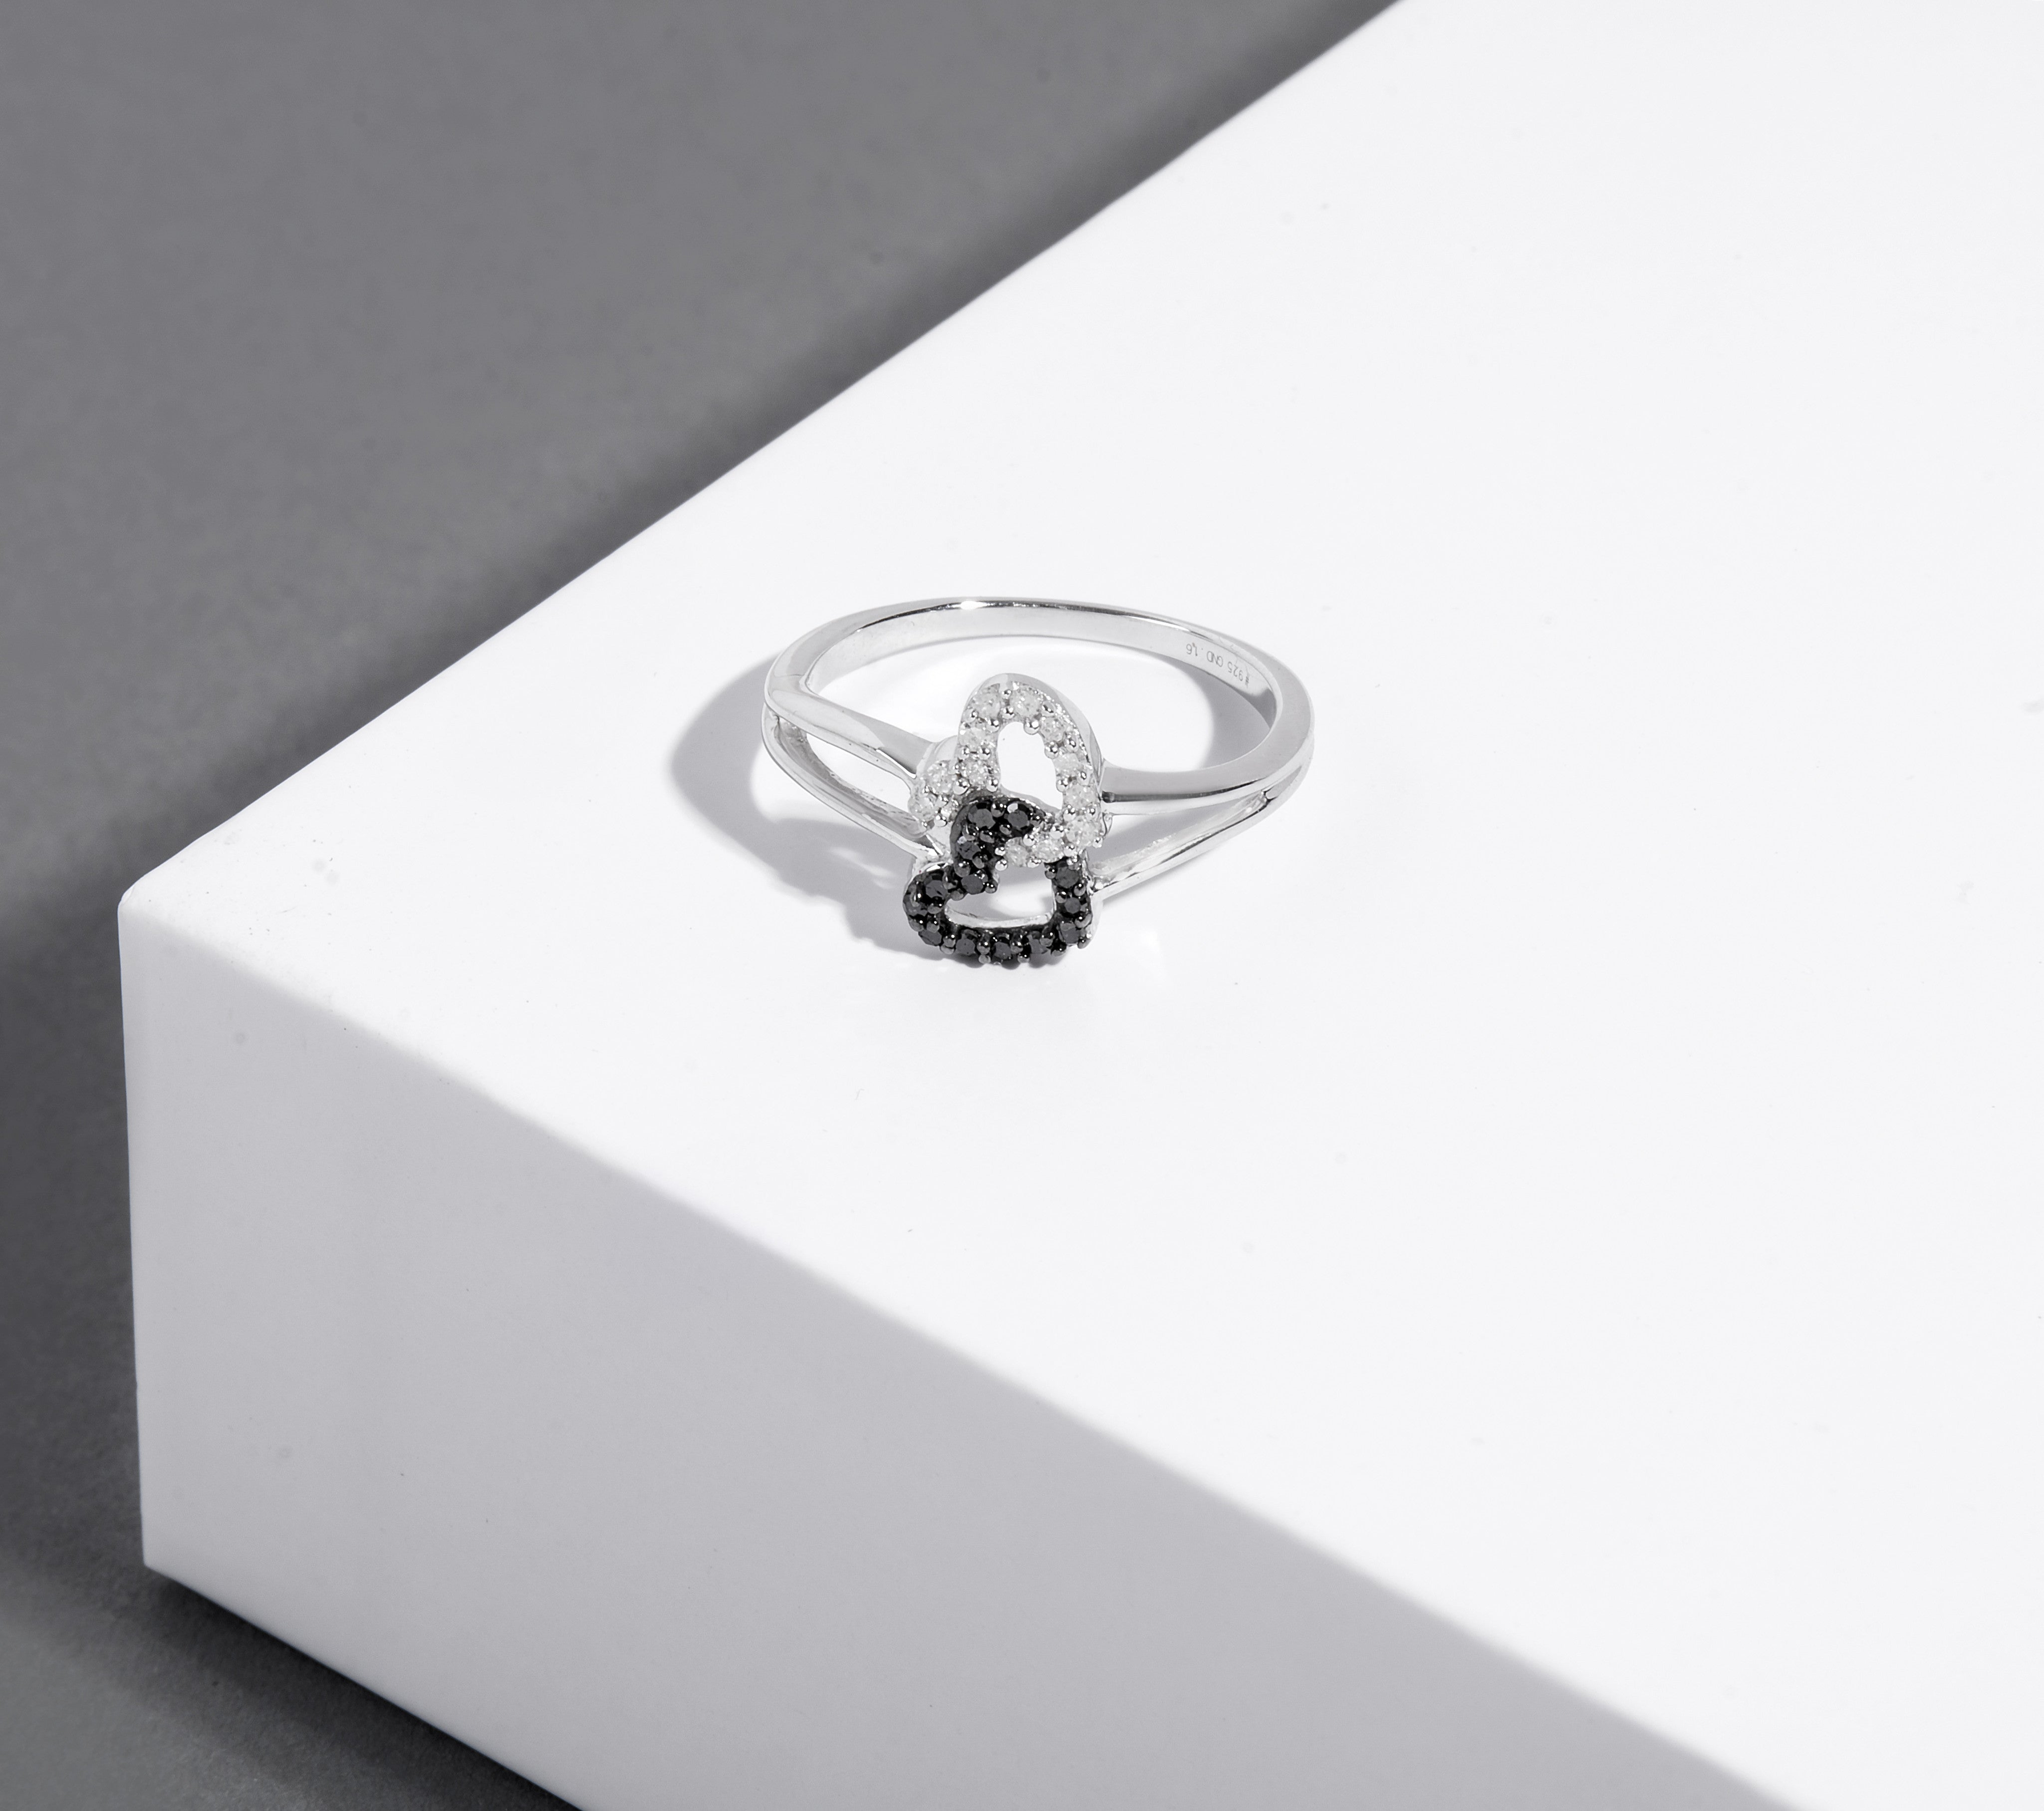 925 Silver Diamond Double Heart Ring Includes 25 Diamonds